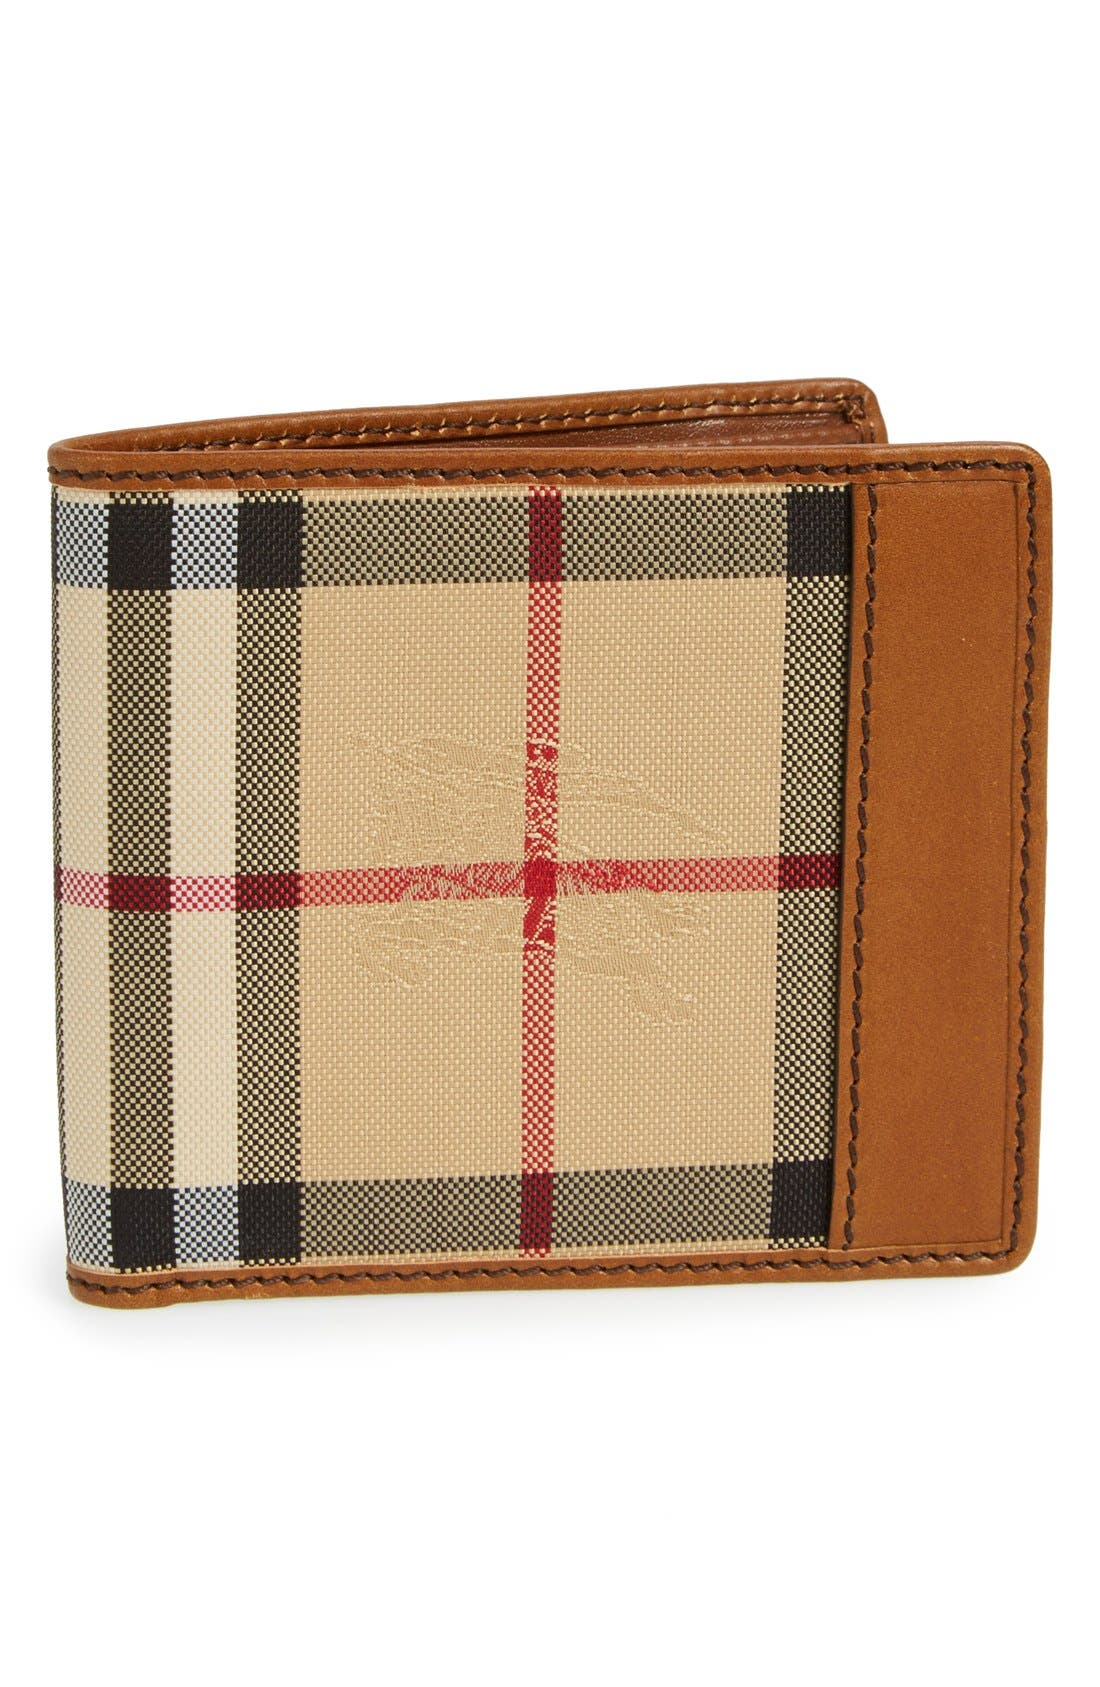 Main Image - Burberry Horseferry Check Billfold Wallet